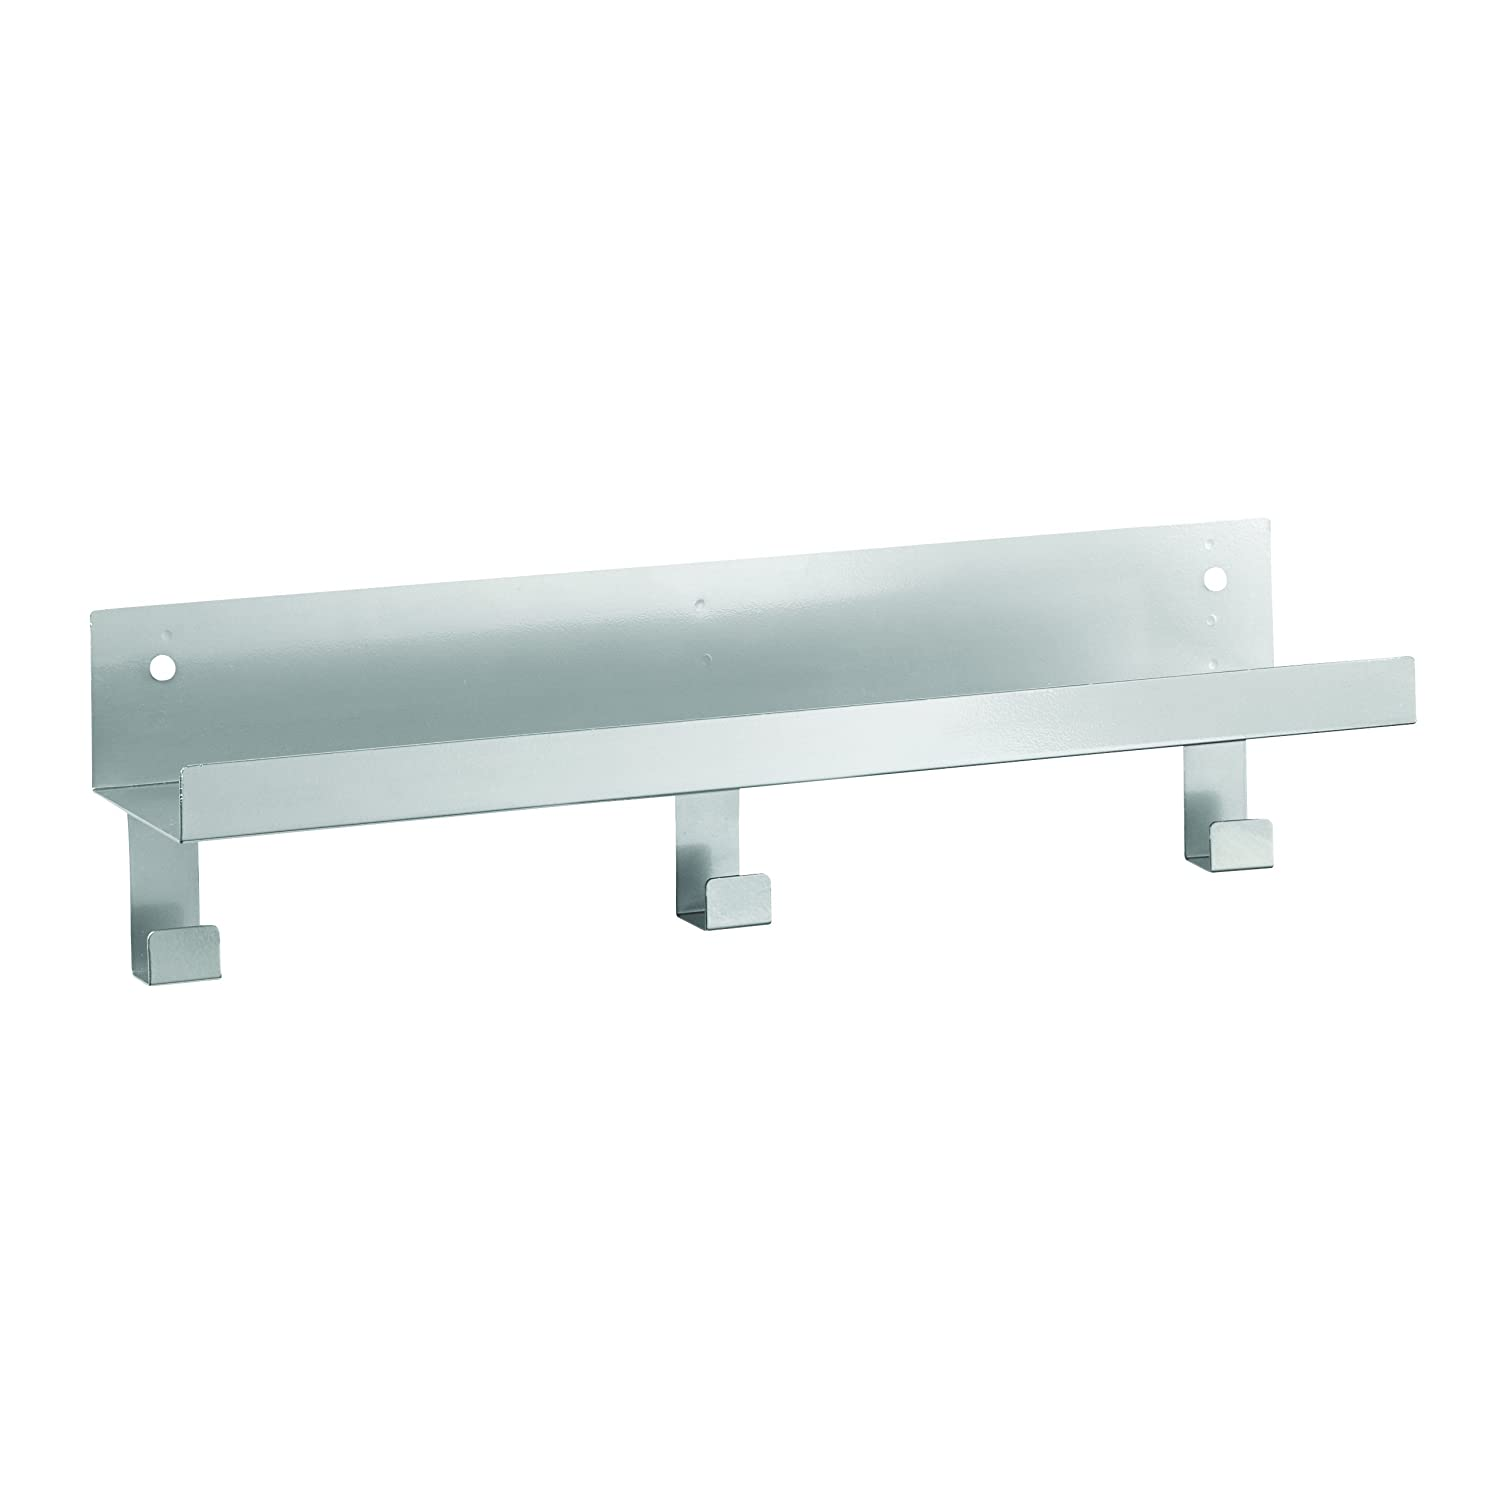 Steelmaster Soho Collection Metal Display Shelf with Peg Hooks, 5 x 18 x 4.5-Inch, Silver (271118350) MMF Industries